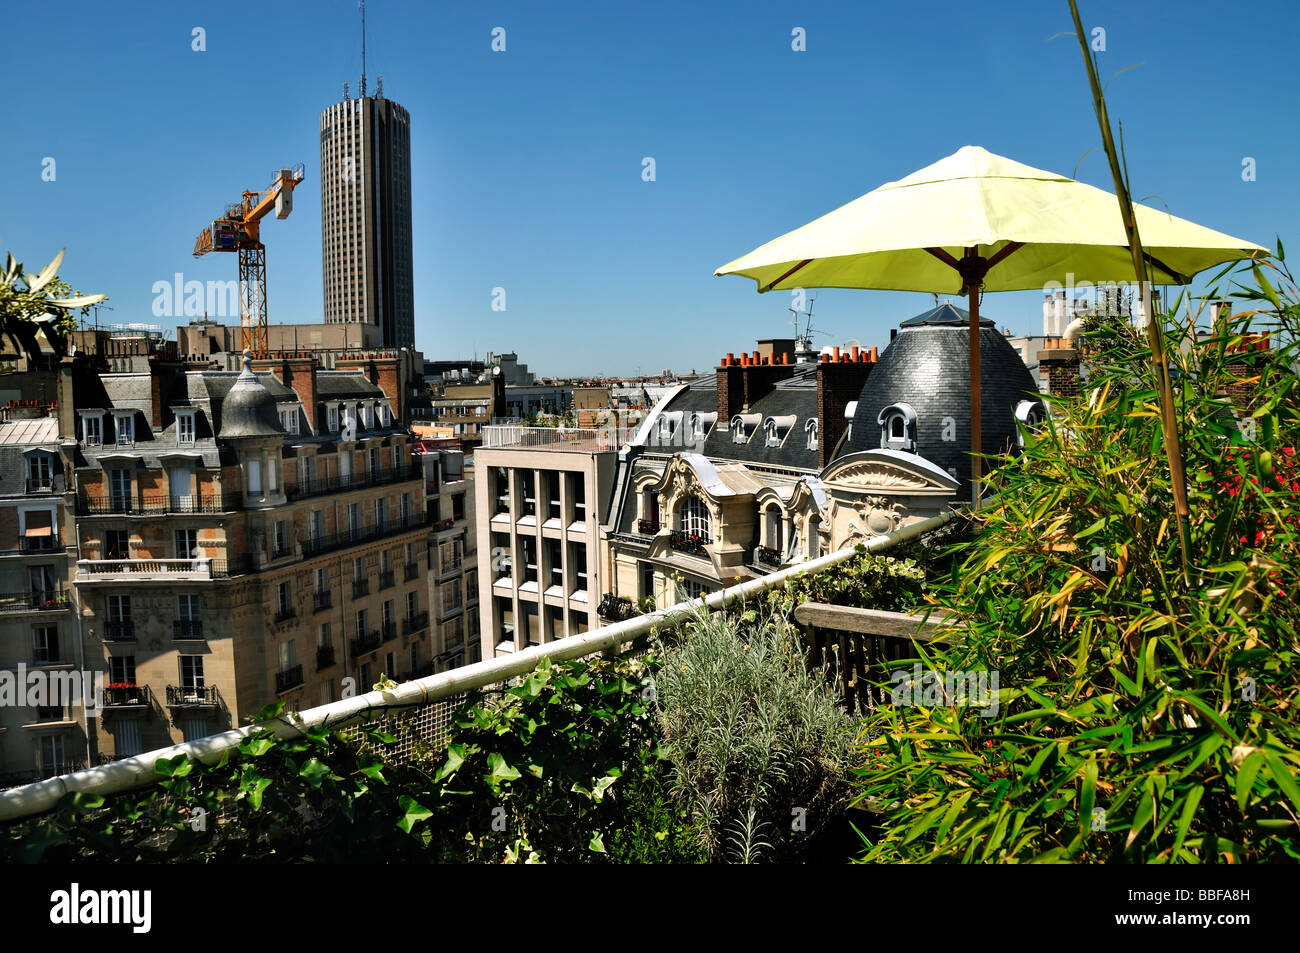 Paris France, Aerial View from Private Apartment, Balcony Garden urban  terrace - Stock Image